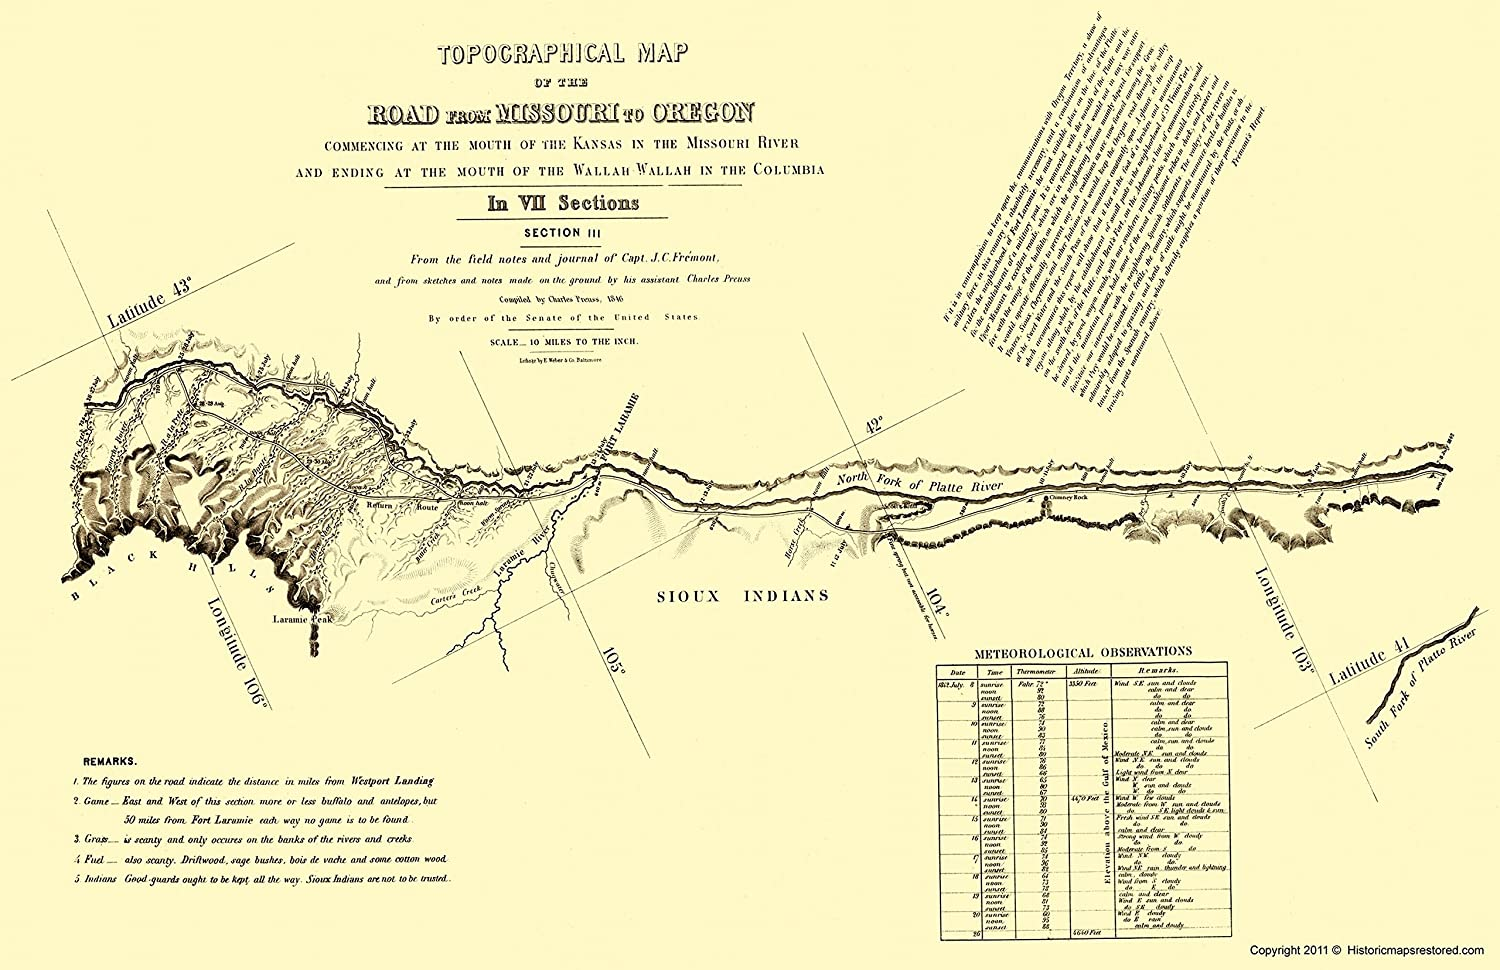 Oregon Trail On Us Map.Amazon Com Topographical Map Oregon Trail Wyoming 3 Of 7